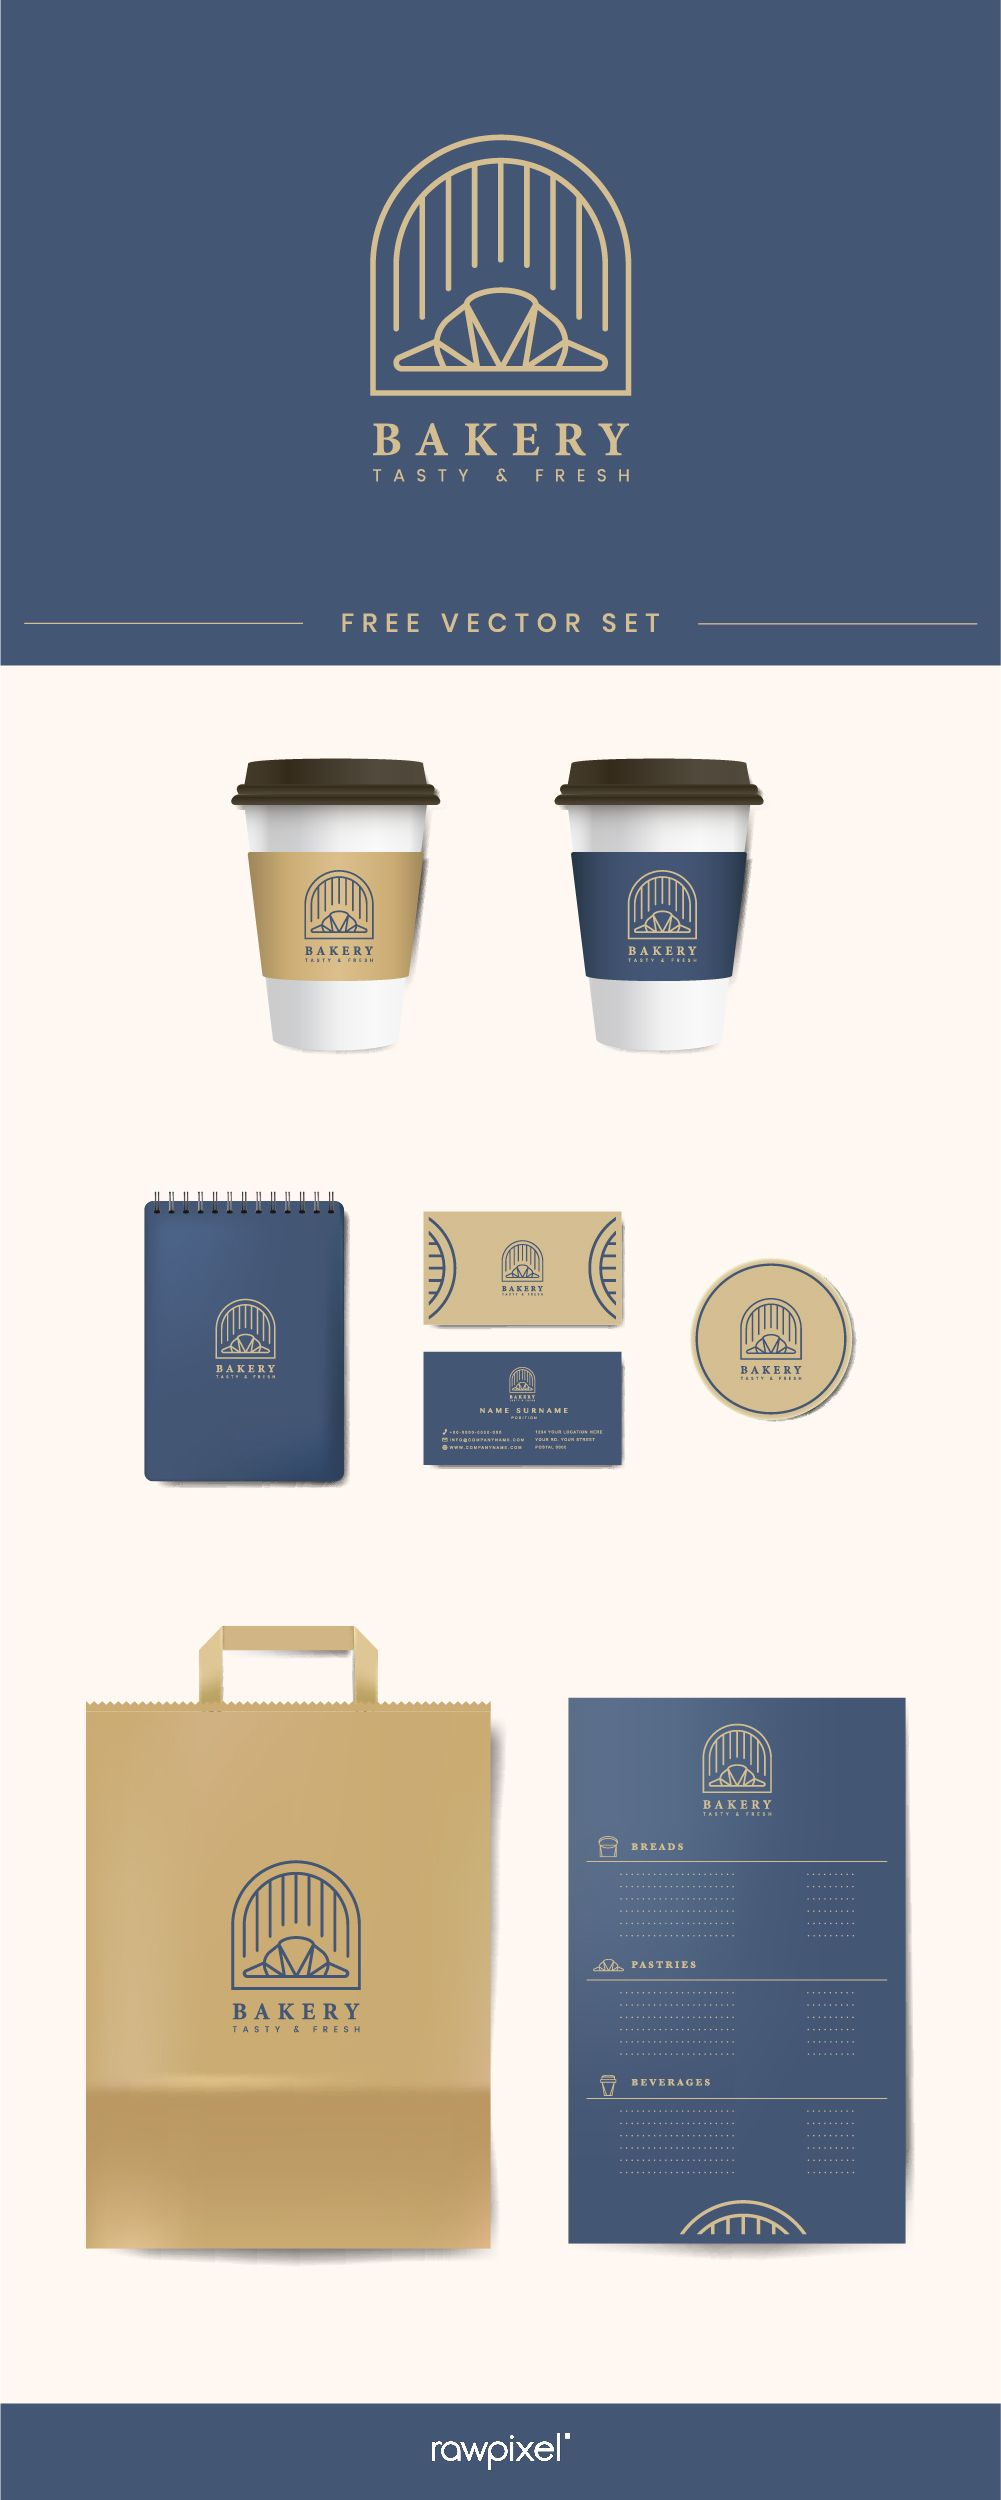 Download these free vectors of coffee shop mockup and